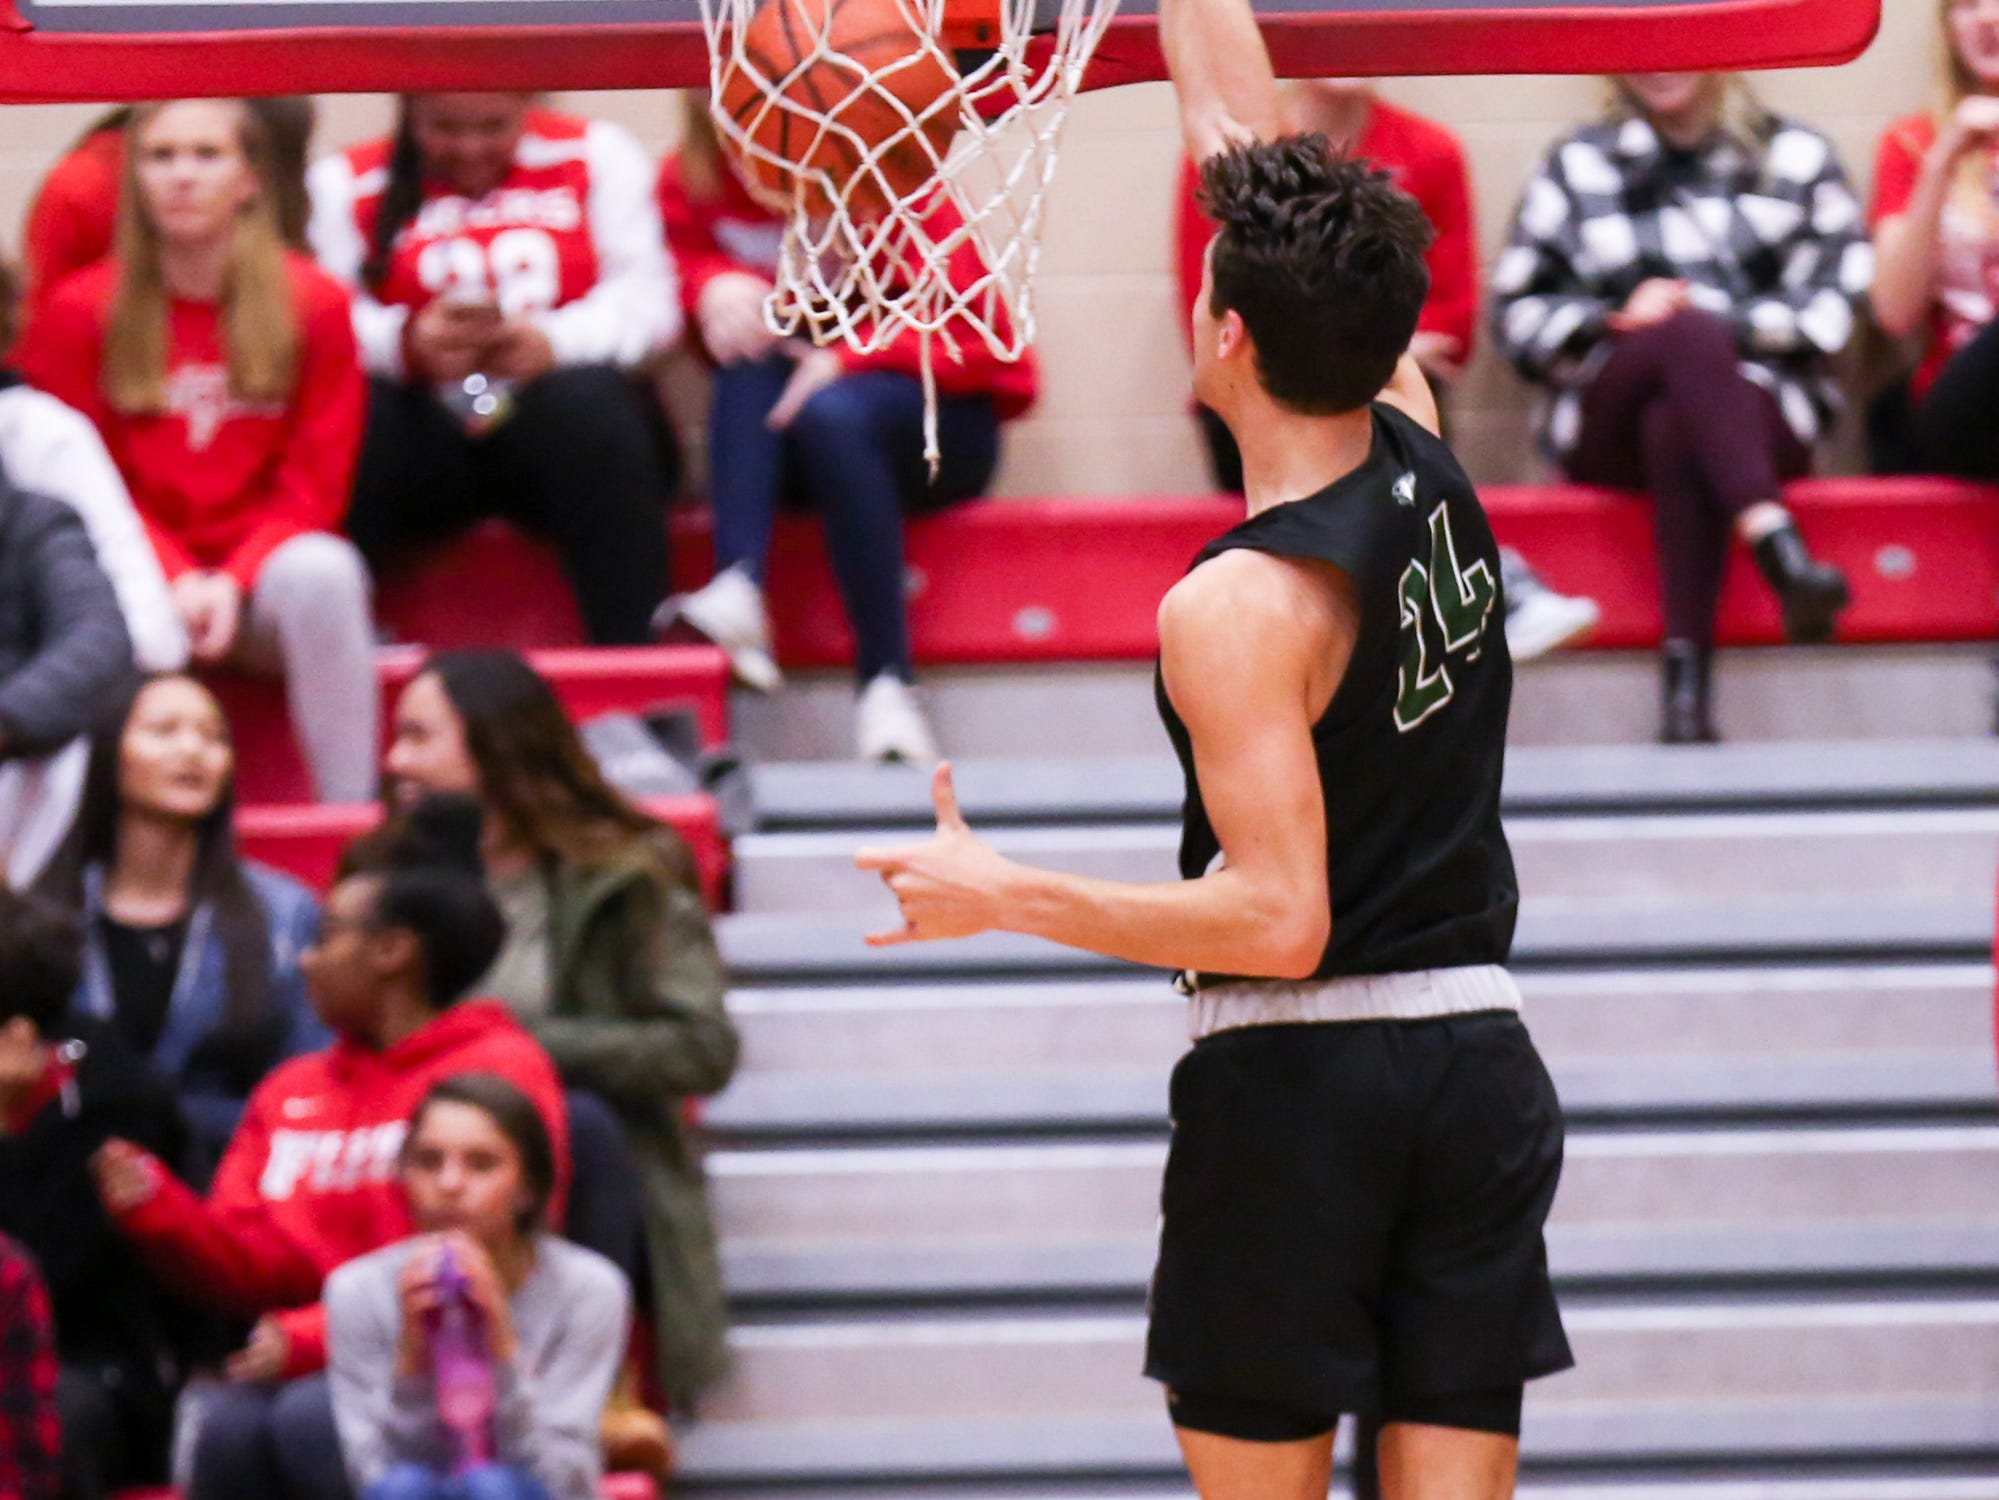 Zionsville Nathan Childress (24) in for a slam dunk during the first half of Zionsville vs. Fishers high school boys varsity basketball game held at Fishers High School, February 15, 2019.